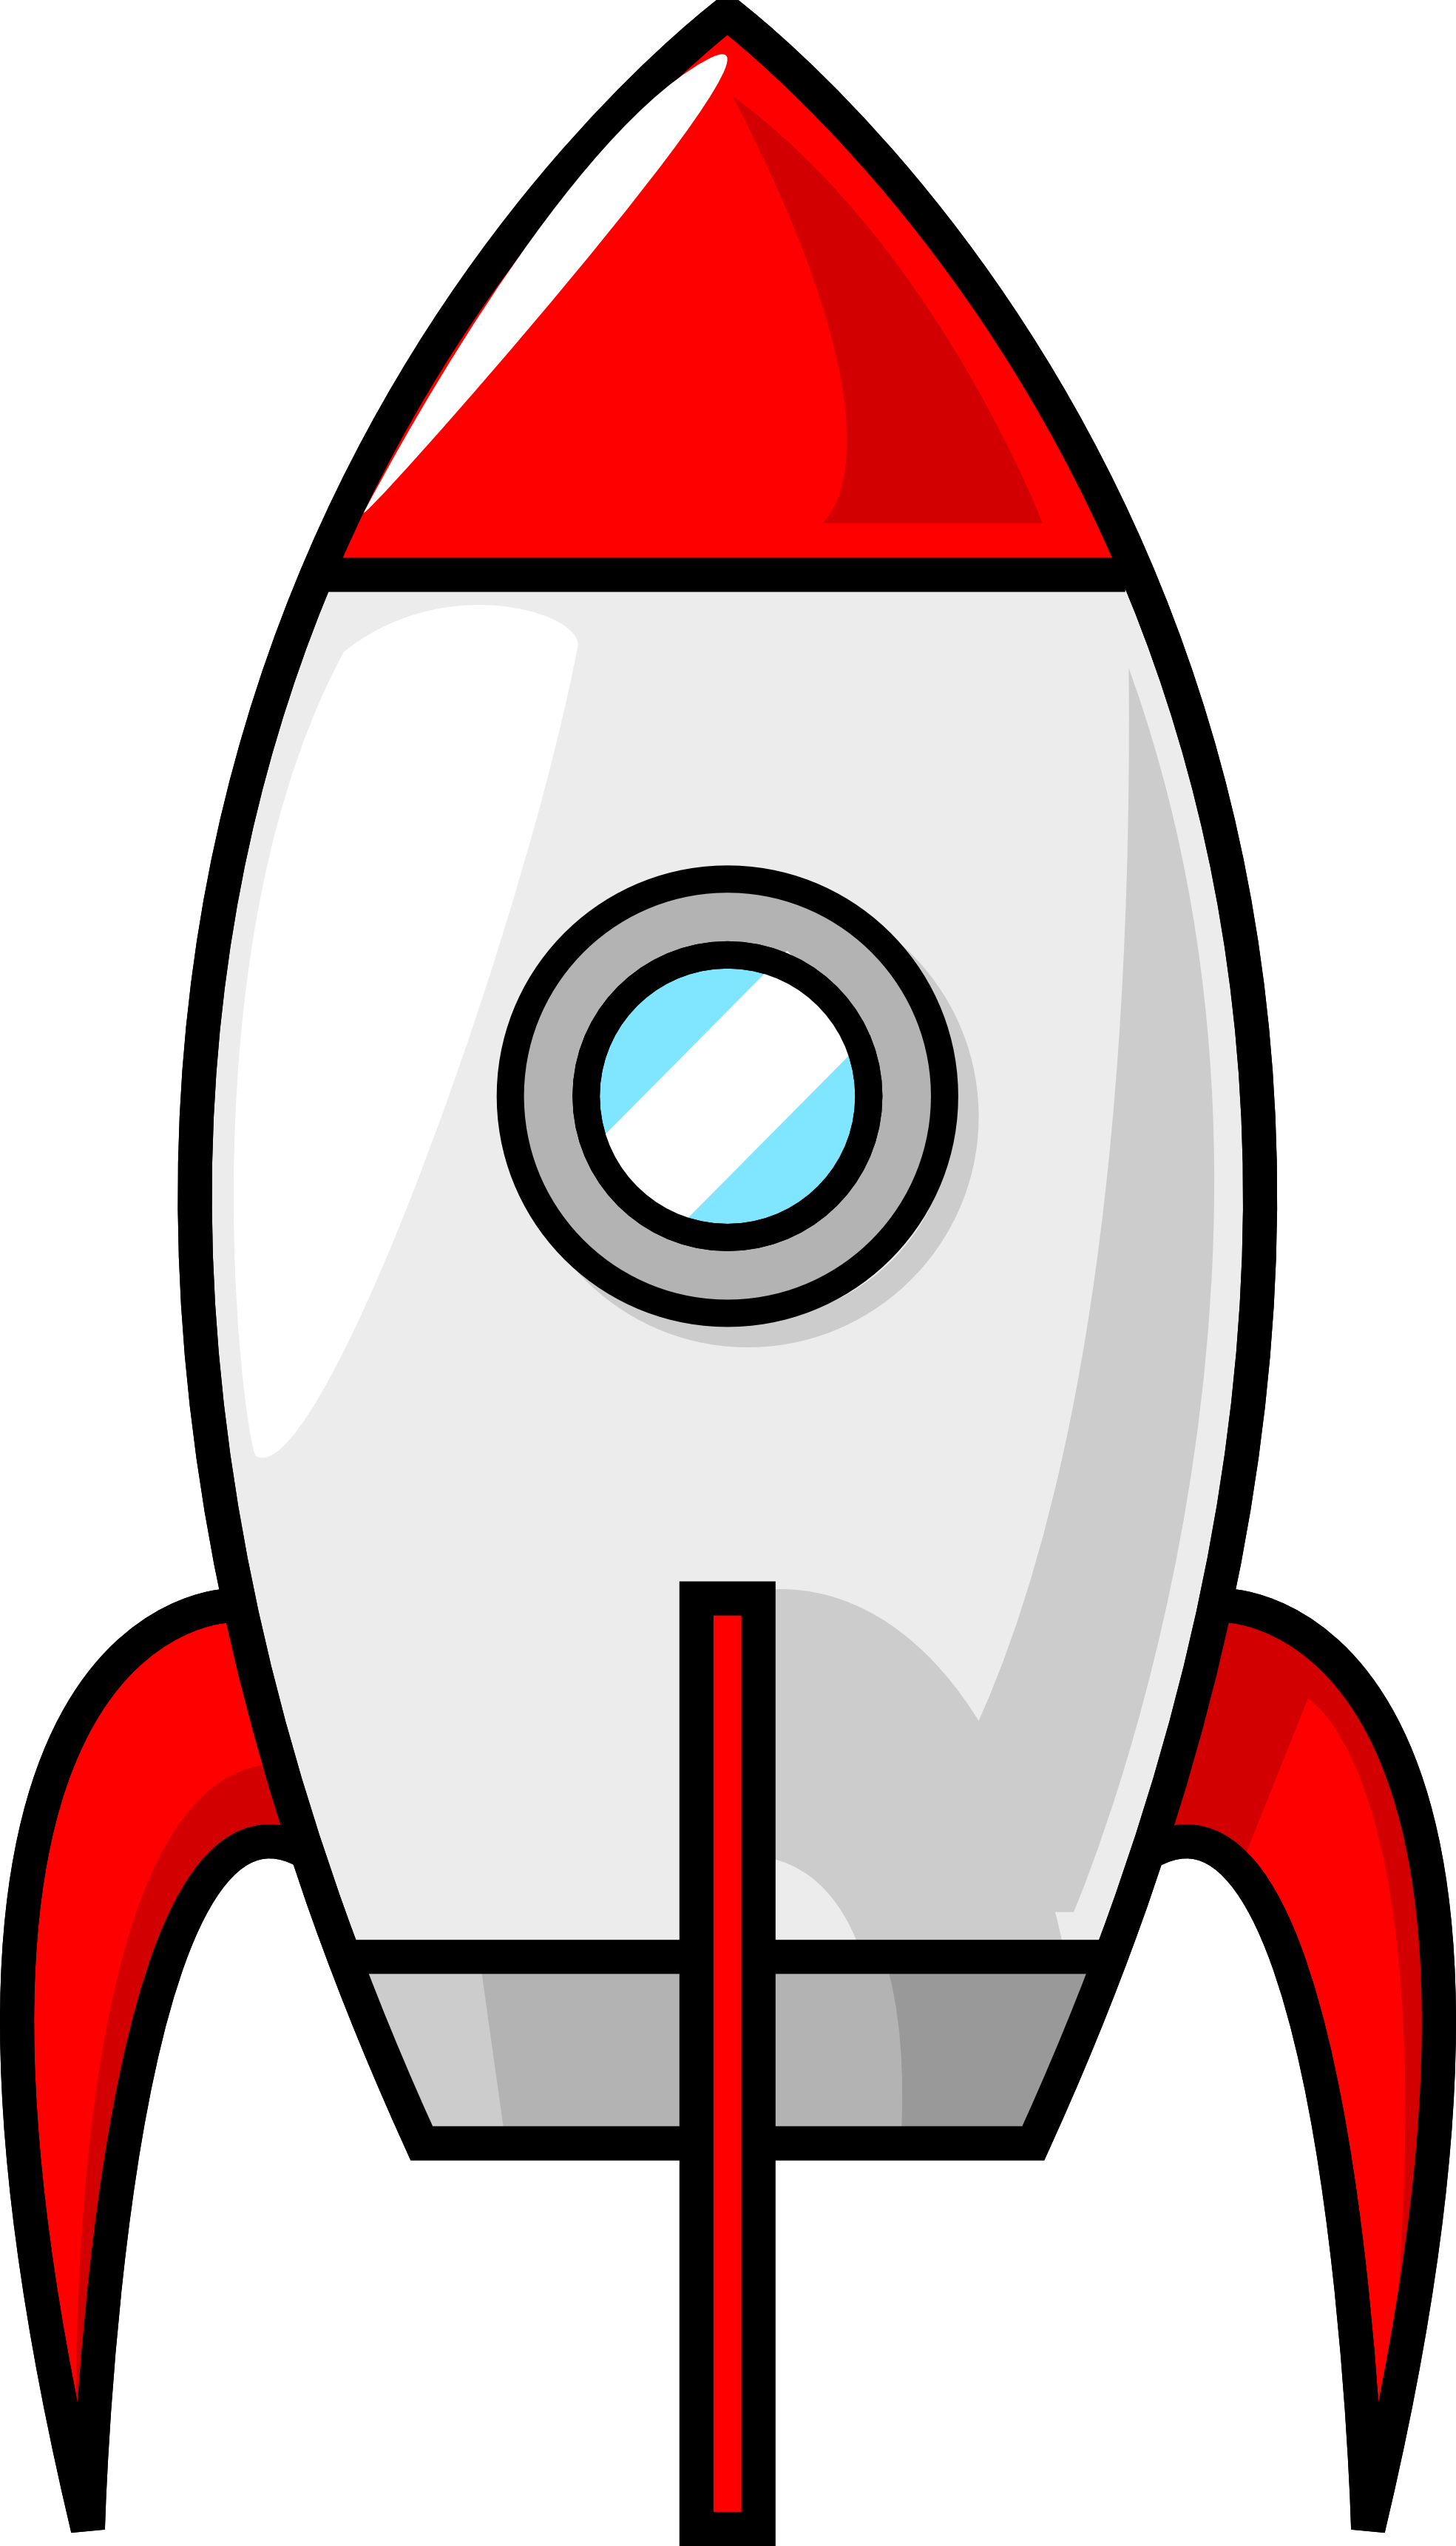 Rocket clip art pinterest. Spaceship clipart png black and white